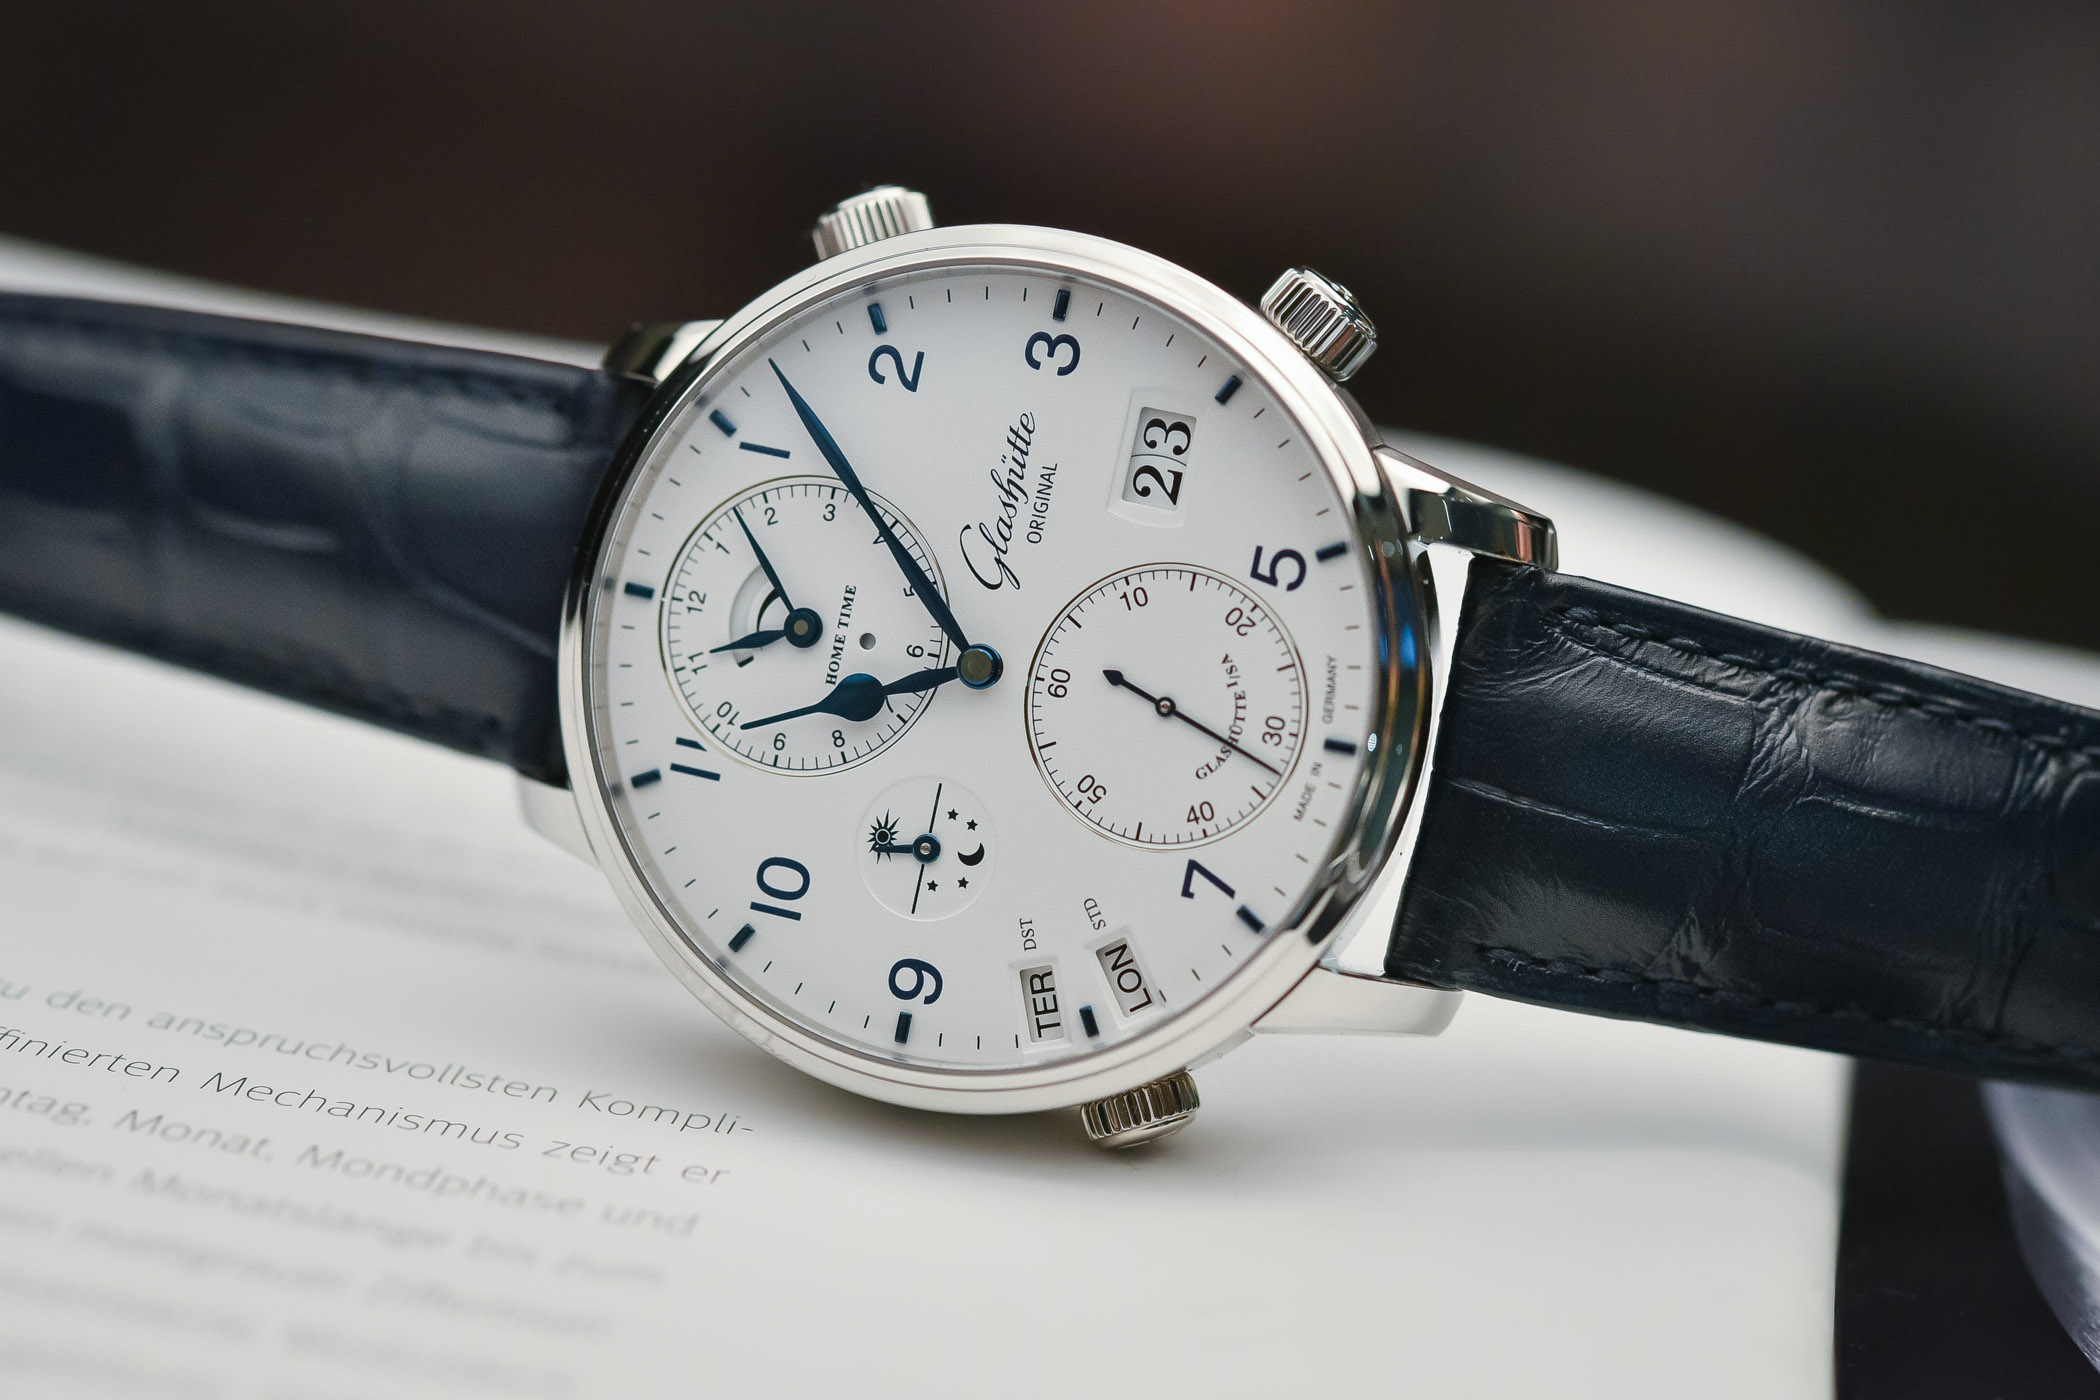 Best GMT Travellers watches Baselworld 2018 - Glashutte Original Senator Cosmopolite Steel